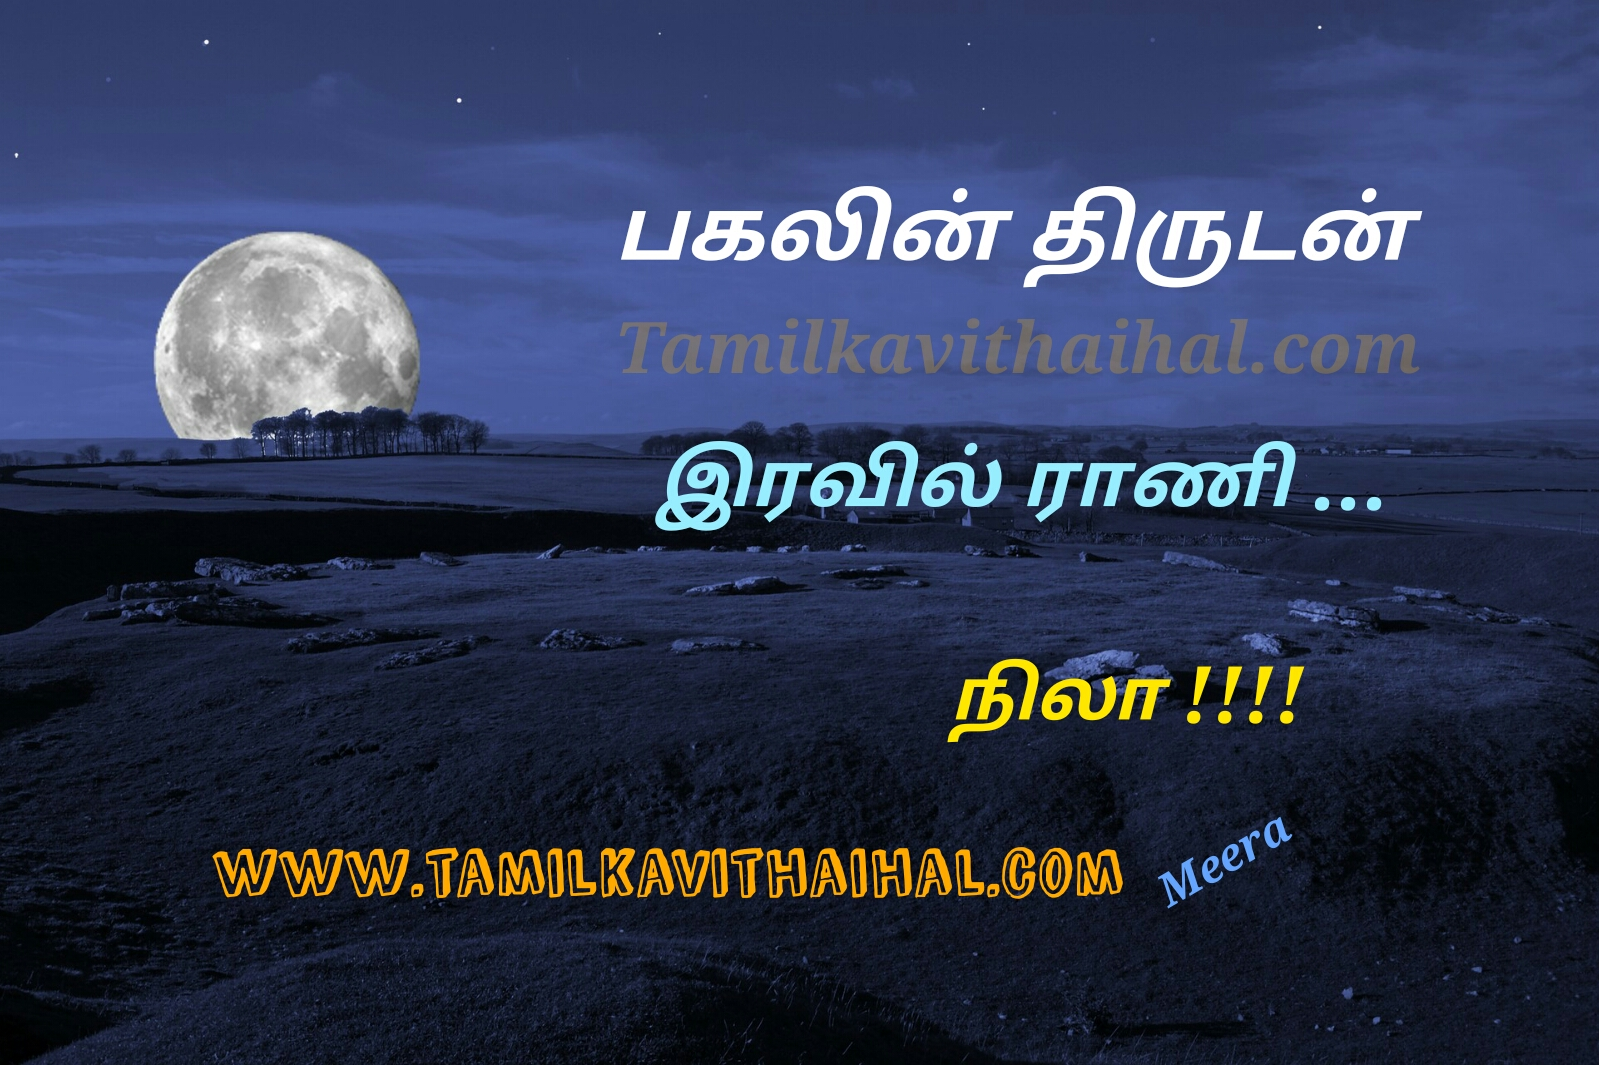 Haikoo kavithai for nila moon in tamil pakal iravu meera poem whatsapp dp status facebook images download